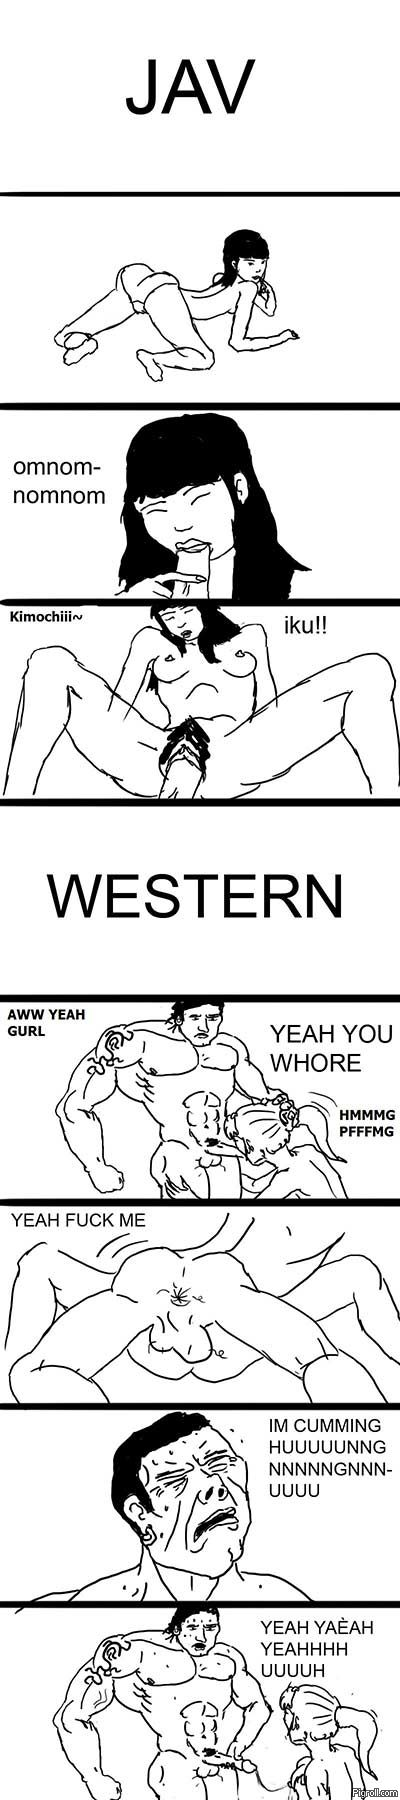 Japanese vs. Western Adult Video